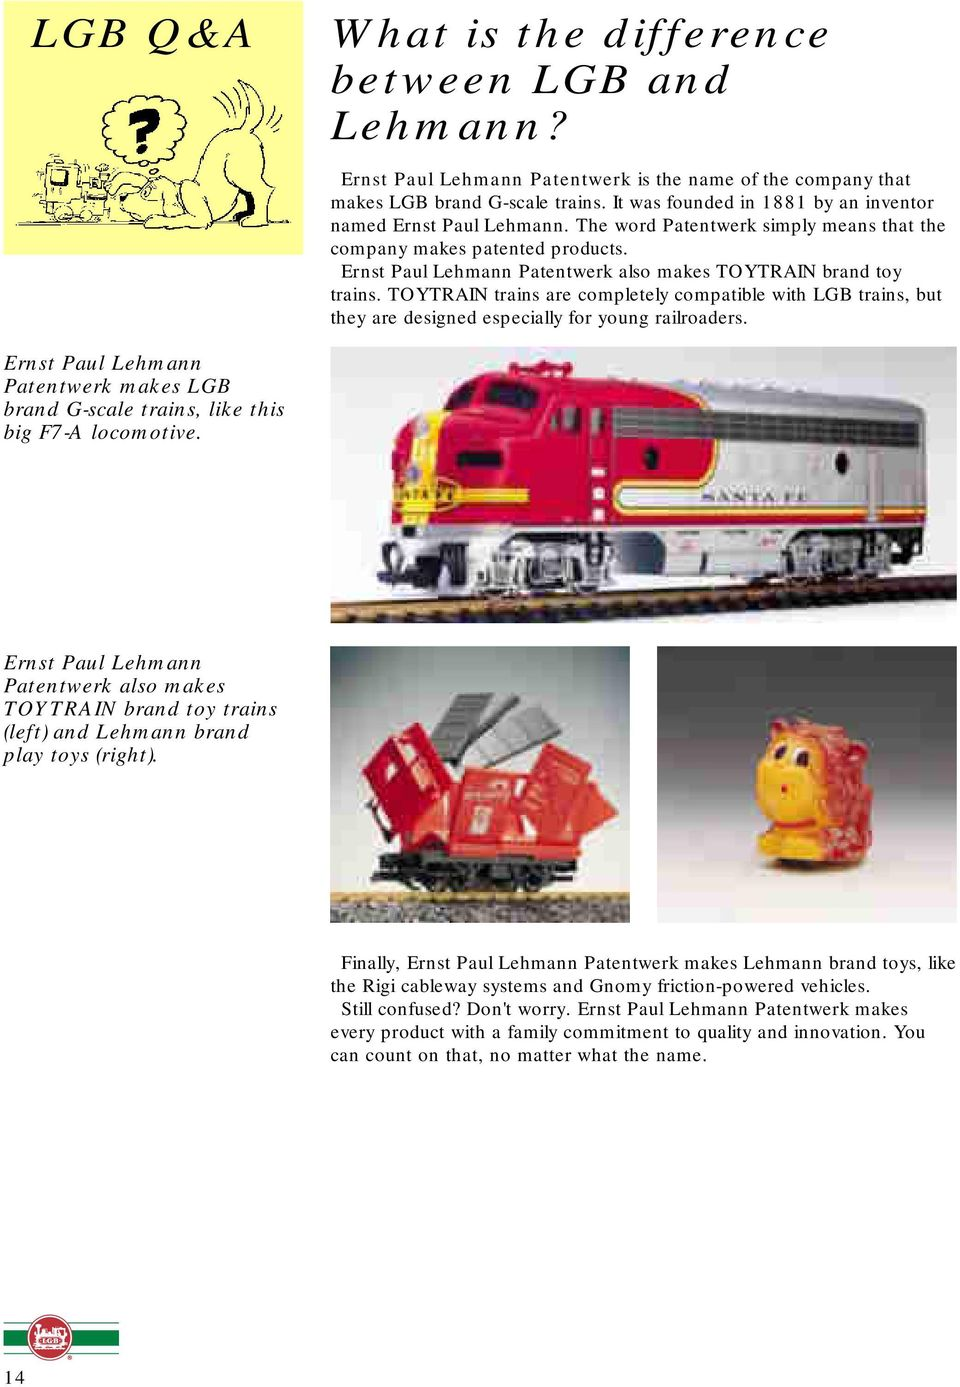 hight resolution of ernst paul lehmann patentwerk also makes toytrain brand toy trains toytrain trains are completely compatible